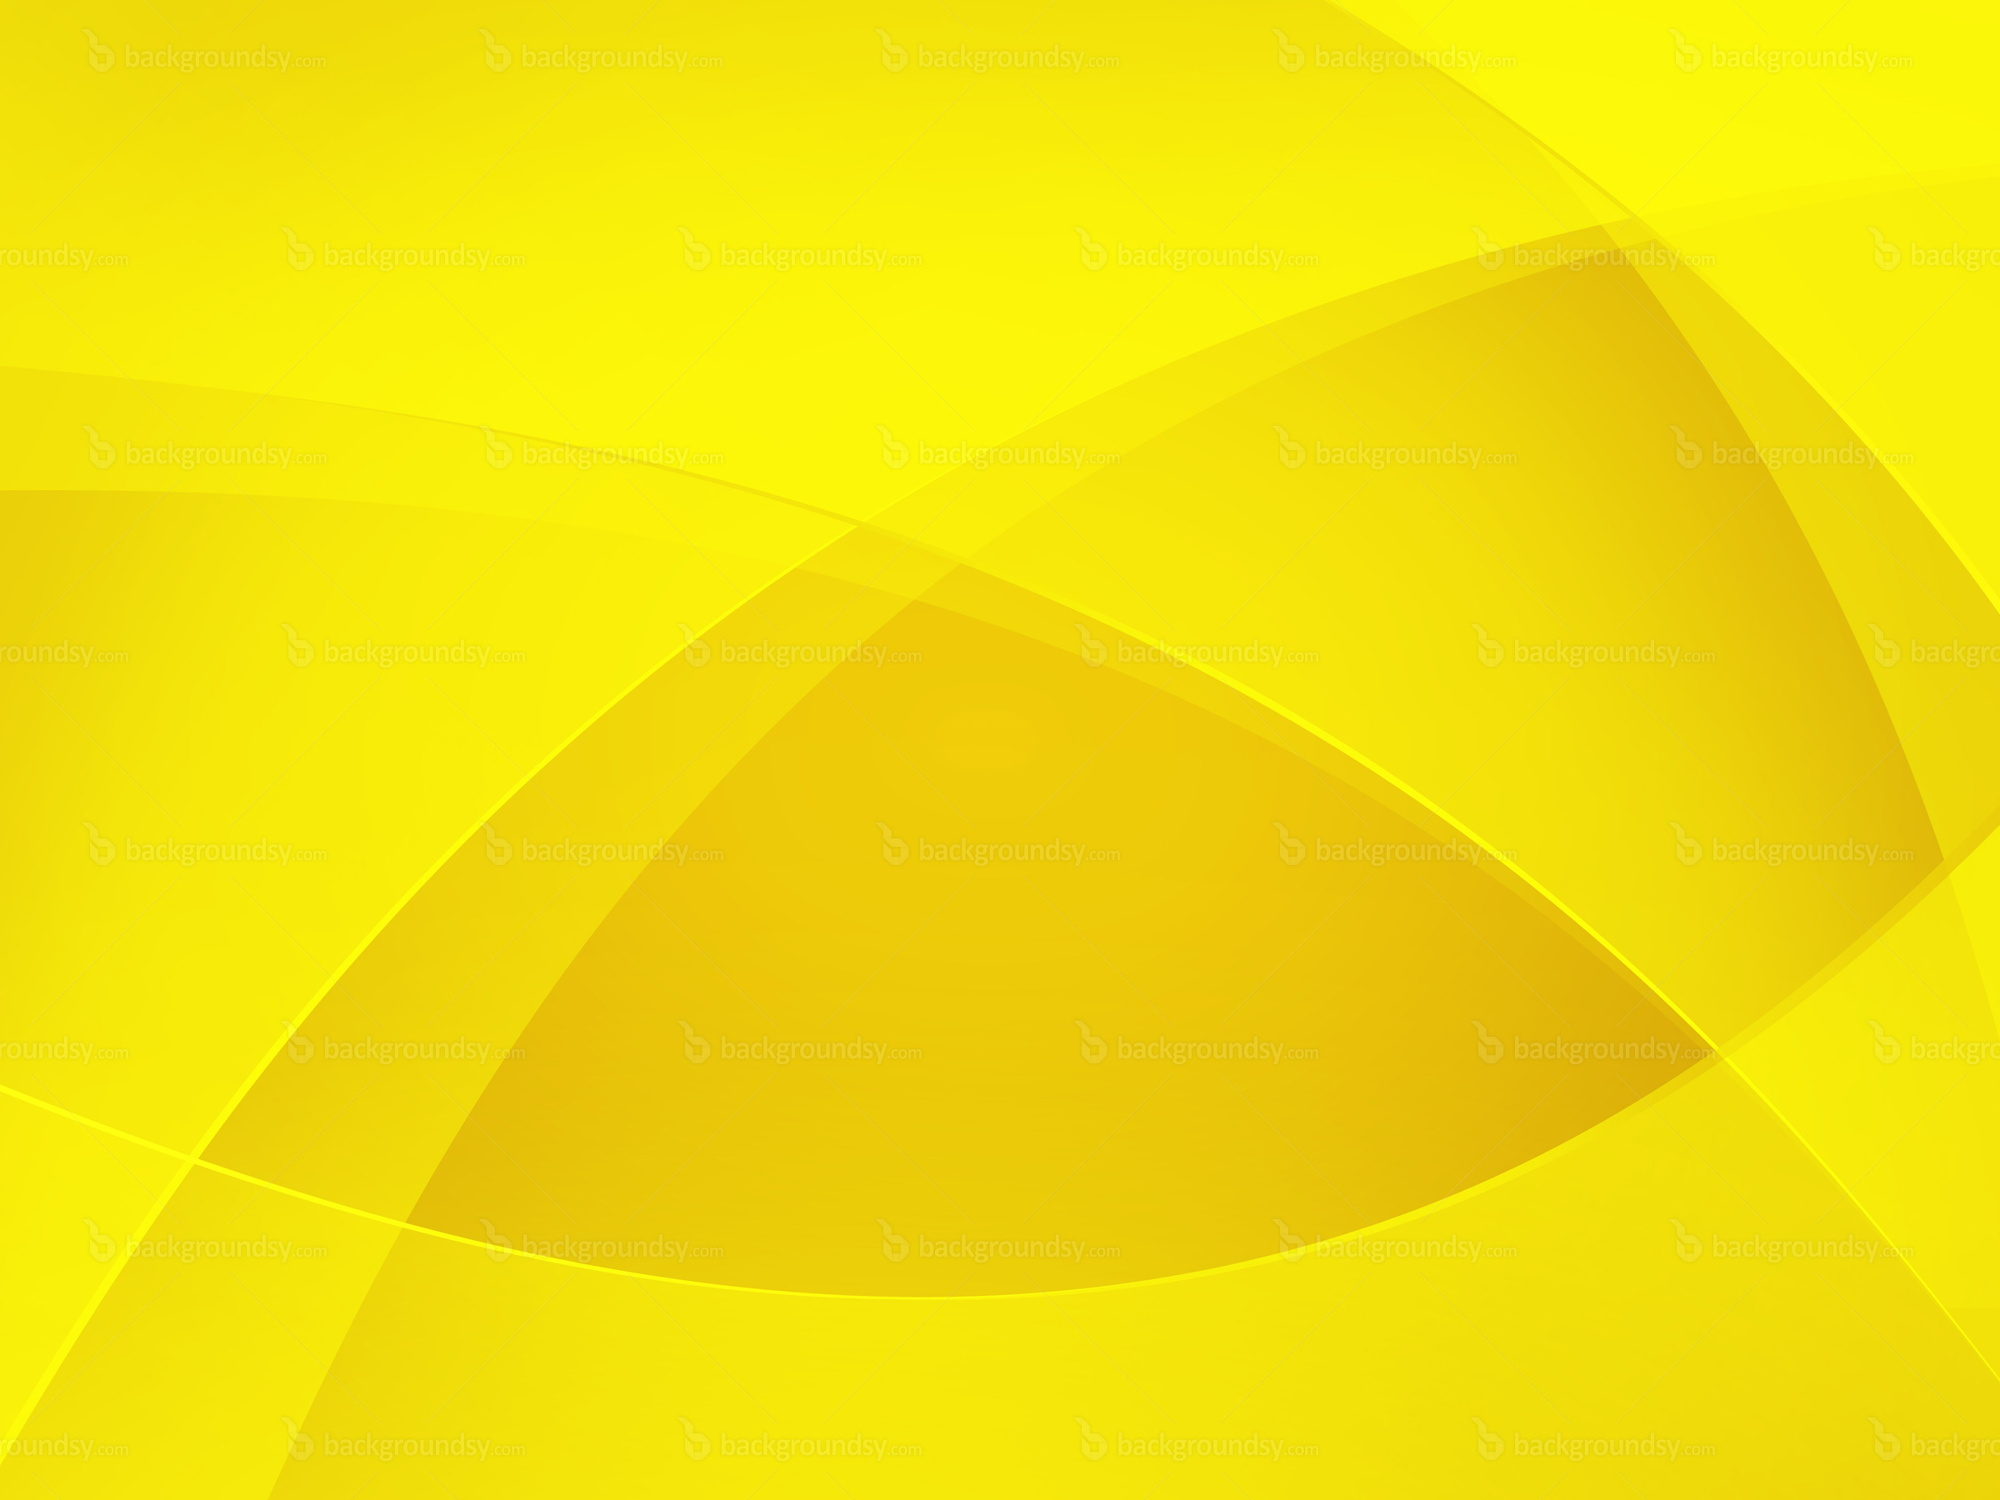 Terms Of Use >> Yellow background | Backgroundsy.com